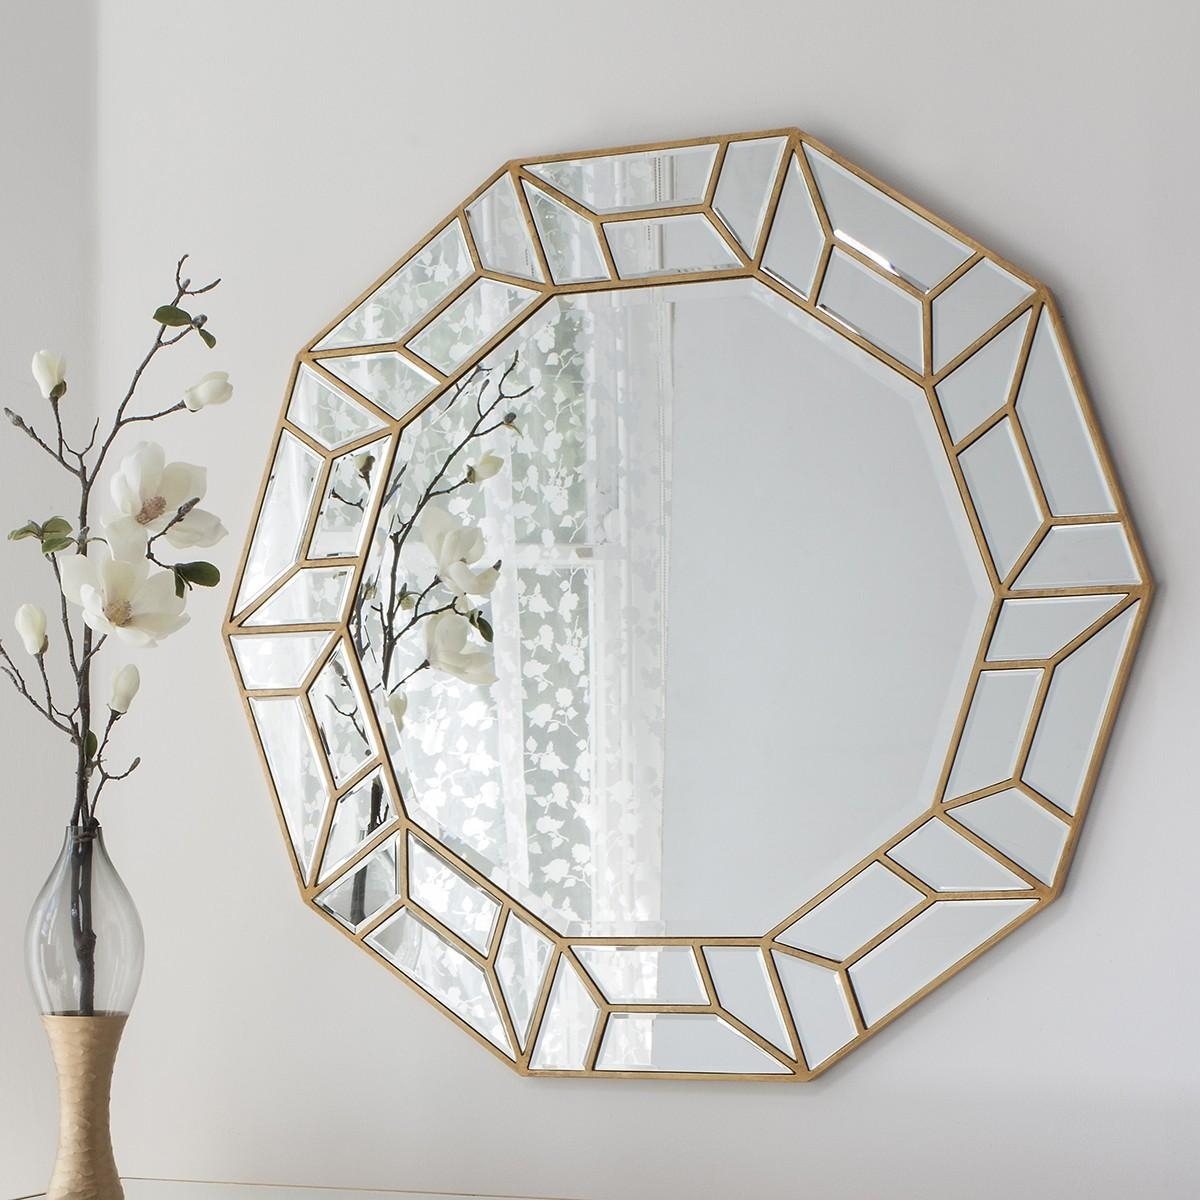 D'or Art Deco Mirror From £349 – Luxury Wall Mirrors | Ashden Road Within Art Deco Mirrors (Image 12 of 20)